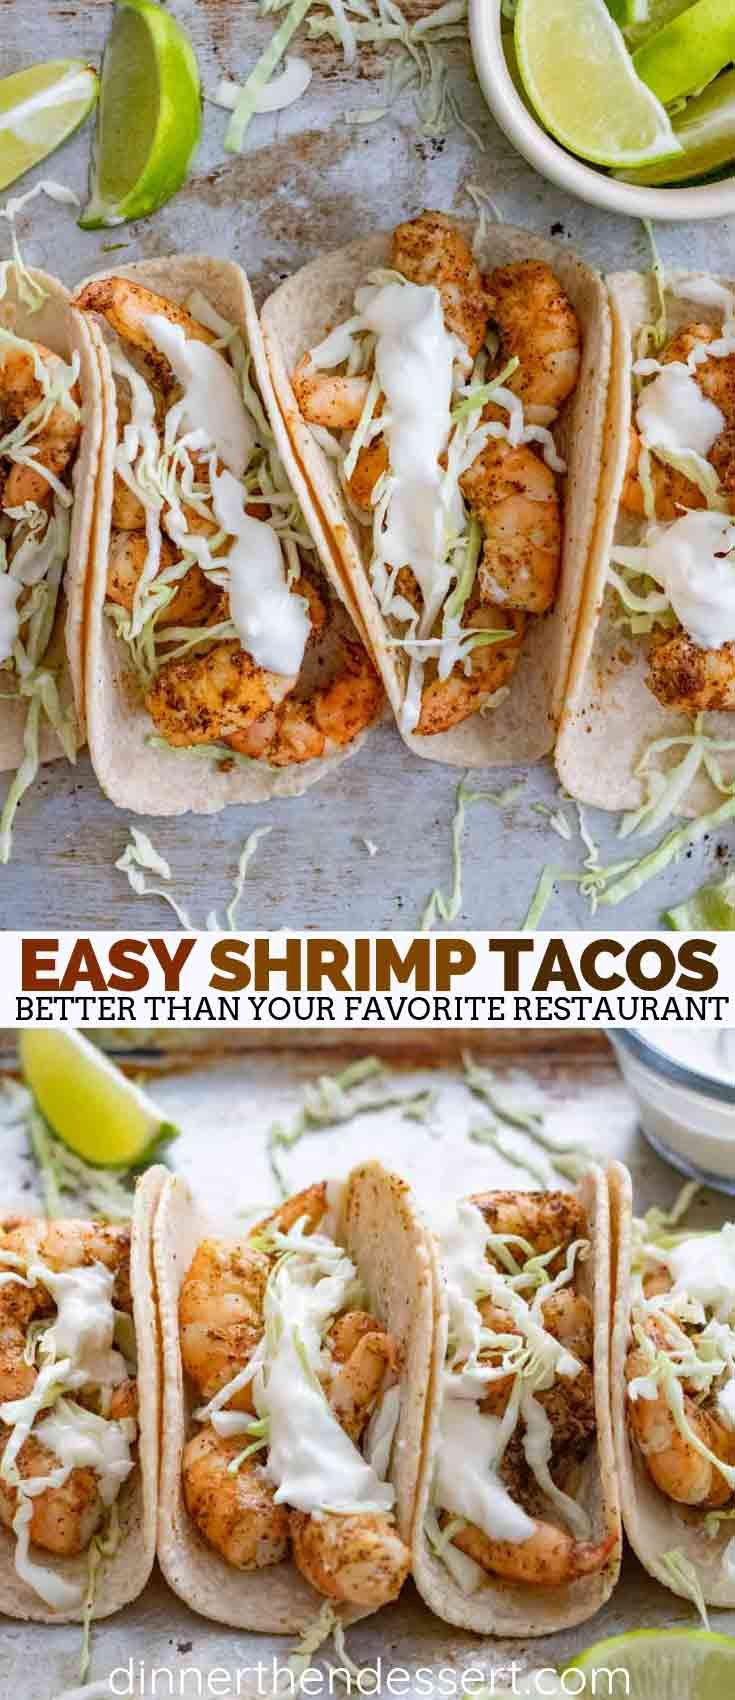 Shrimp tacos made with taco seasoning and topped with cabbage and sour cream are a quick and easy dinner that is perfect for healthy weeknight meals! #shrimp #shrimptacos #tacos #mexican #mexicanfood #easyrecipes #dinner #quickrecipes #weeknightmeals #dinnerthendessert #shrimptacorecipes